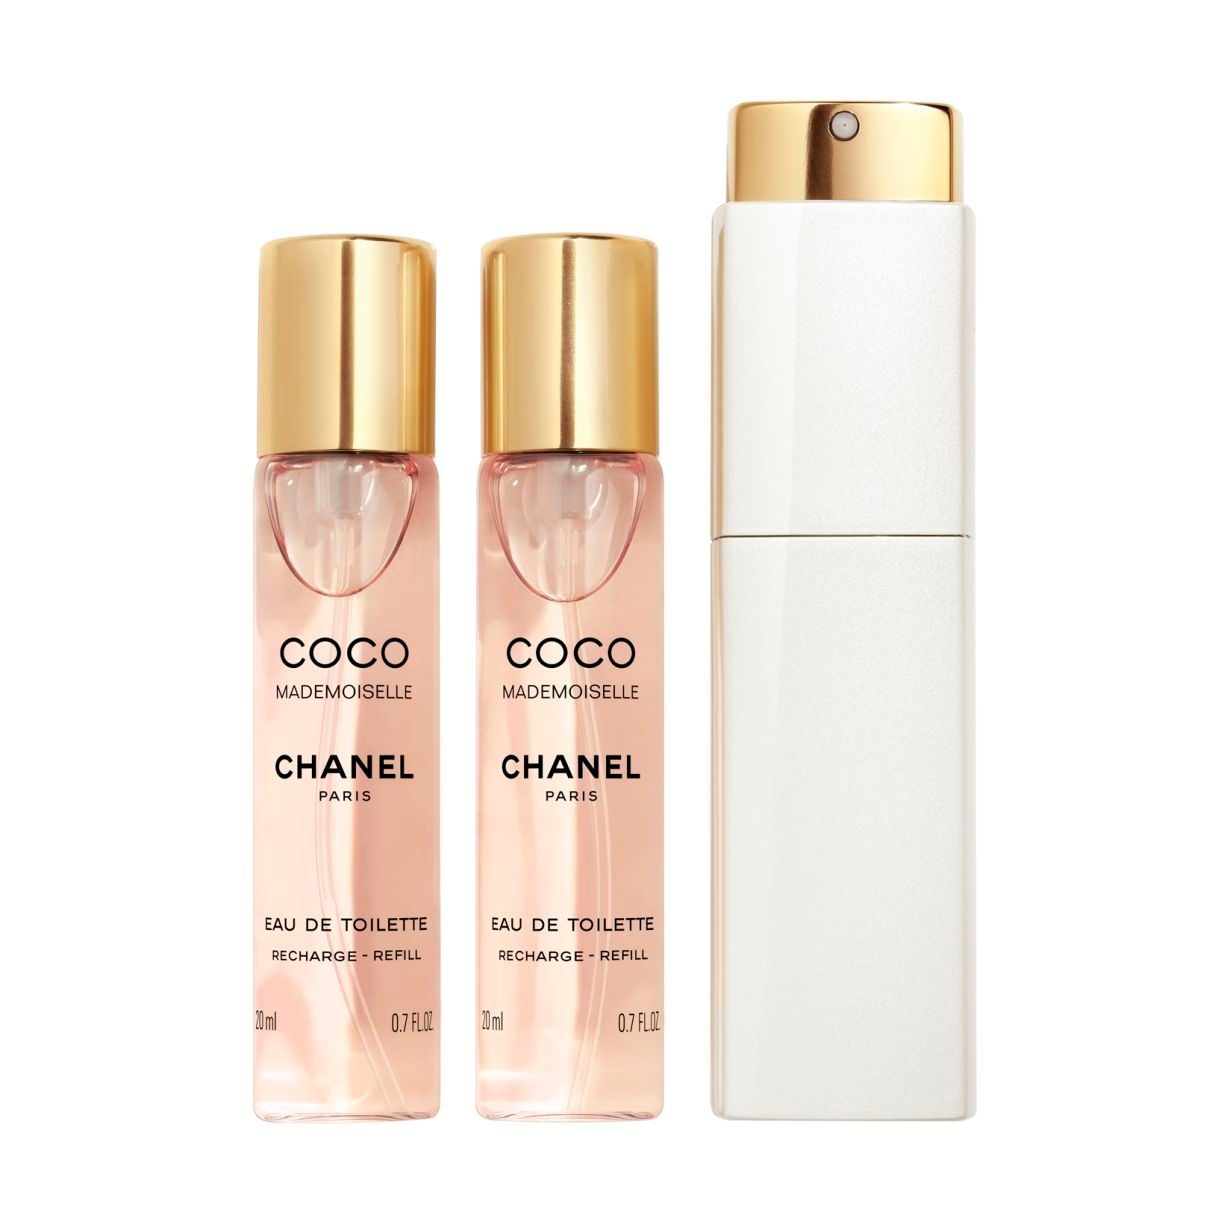 COCO MADEMOISELLE EAU DE TOILETTE TWIST AND SPRAY 3x20ml